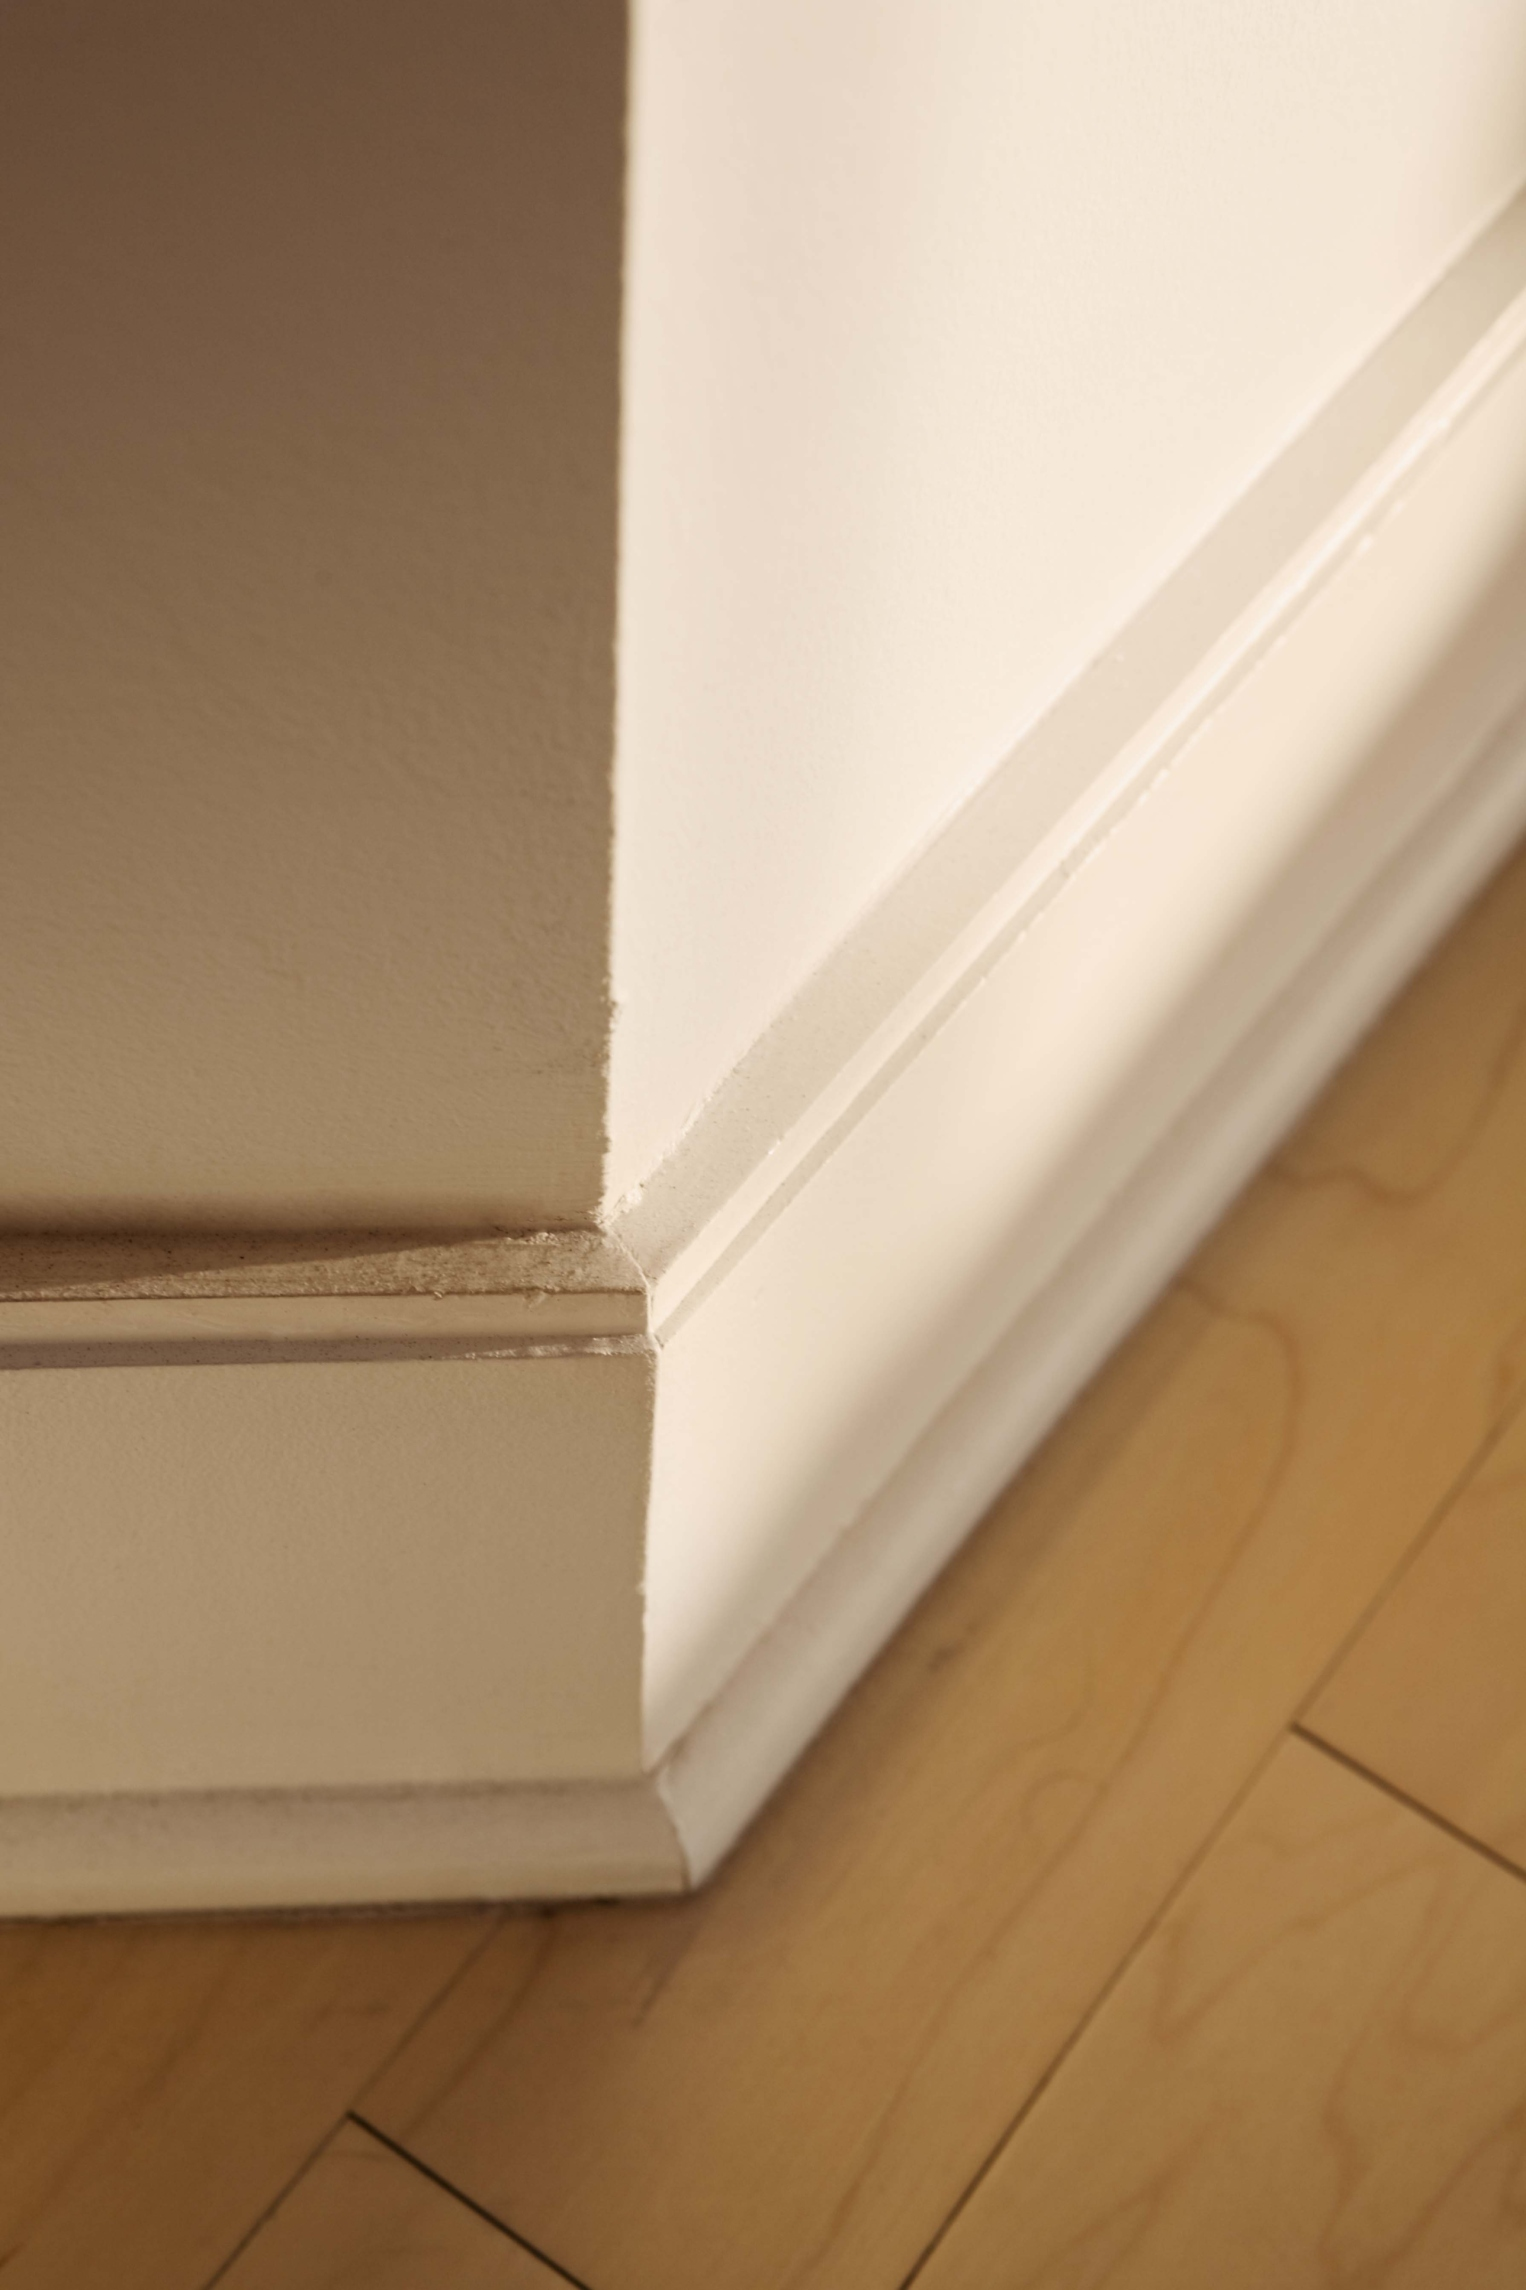 What Baseboard Is Better Plastic Or Wood